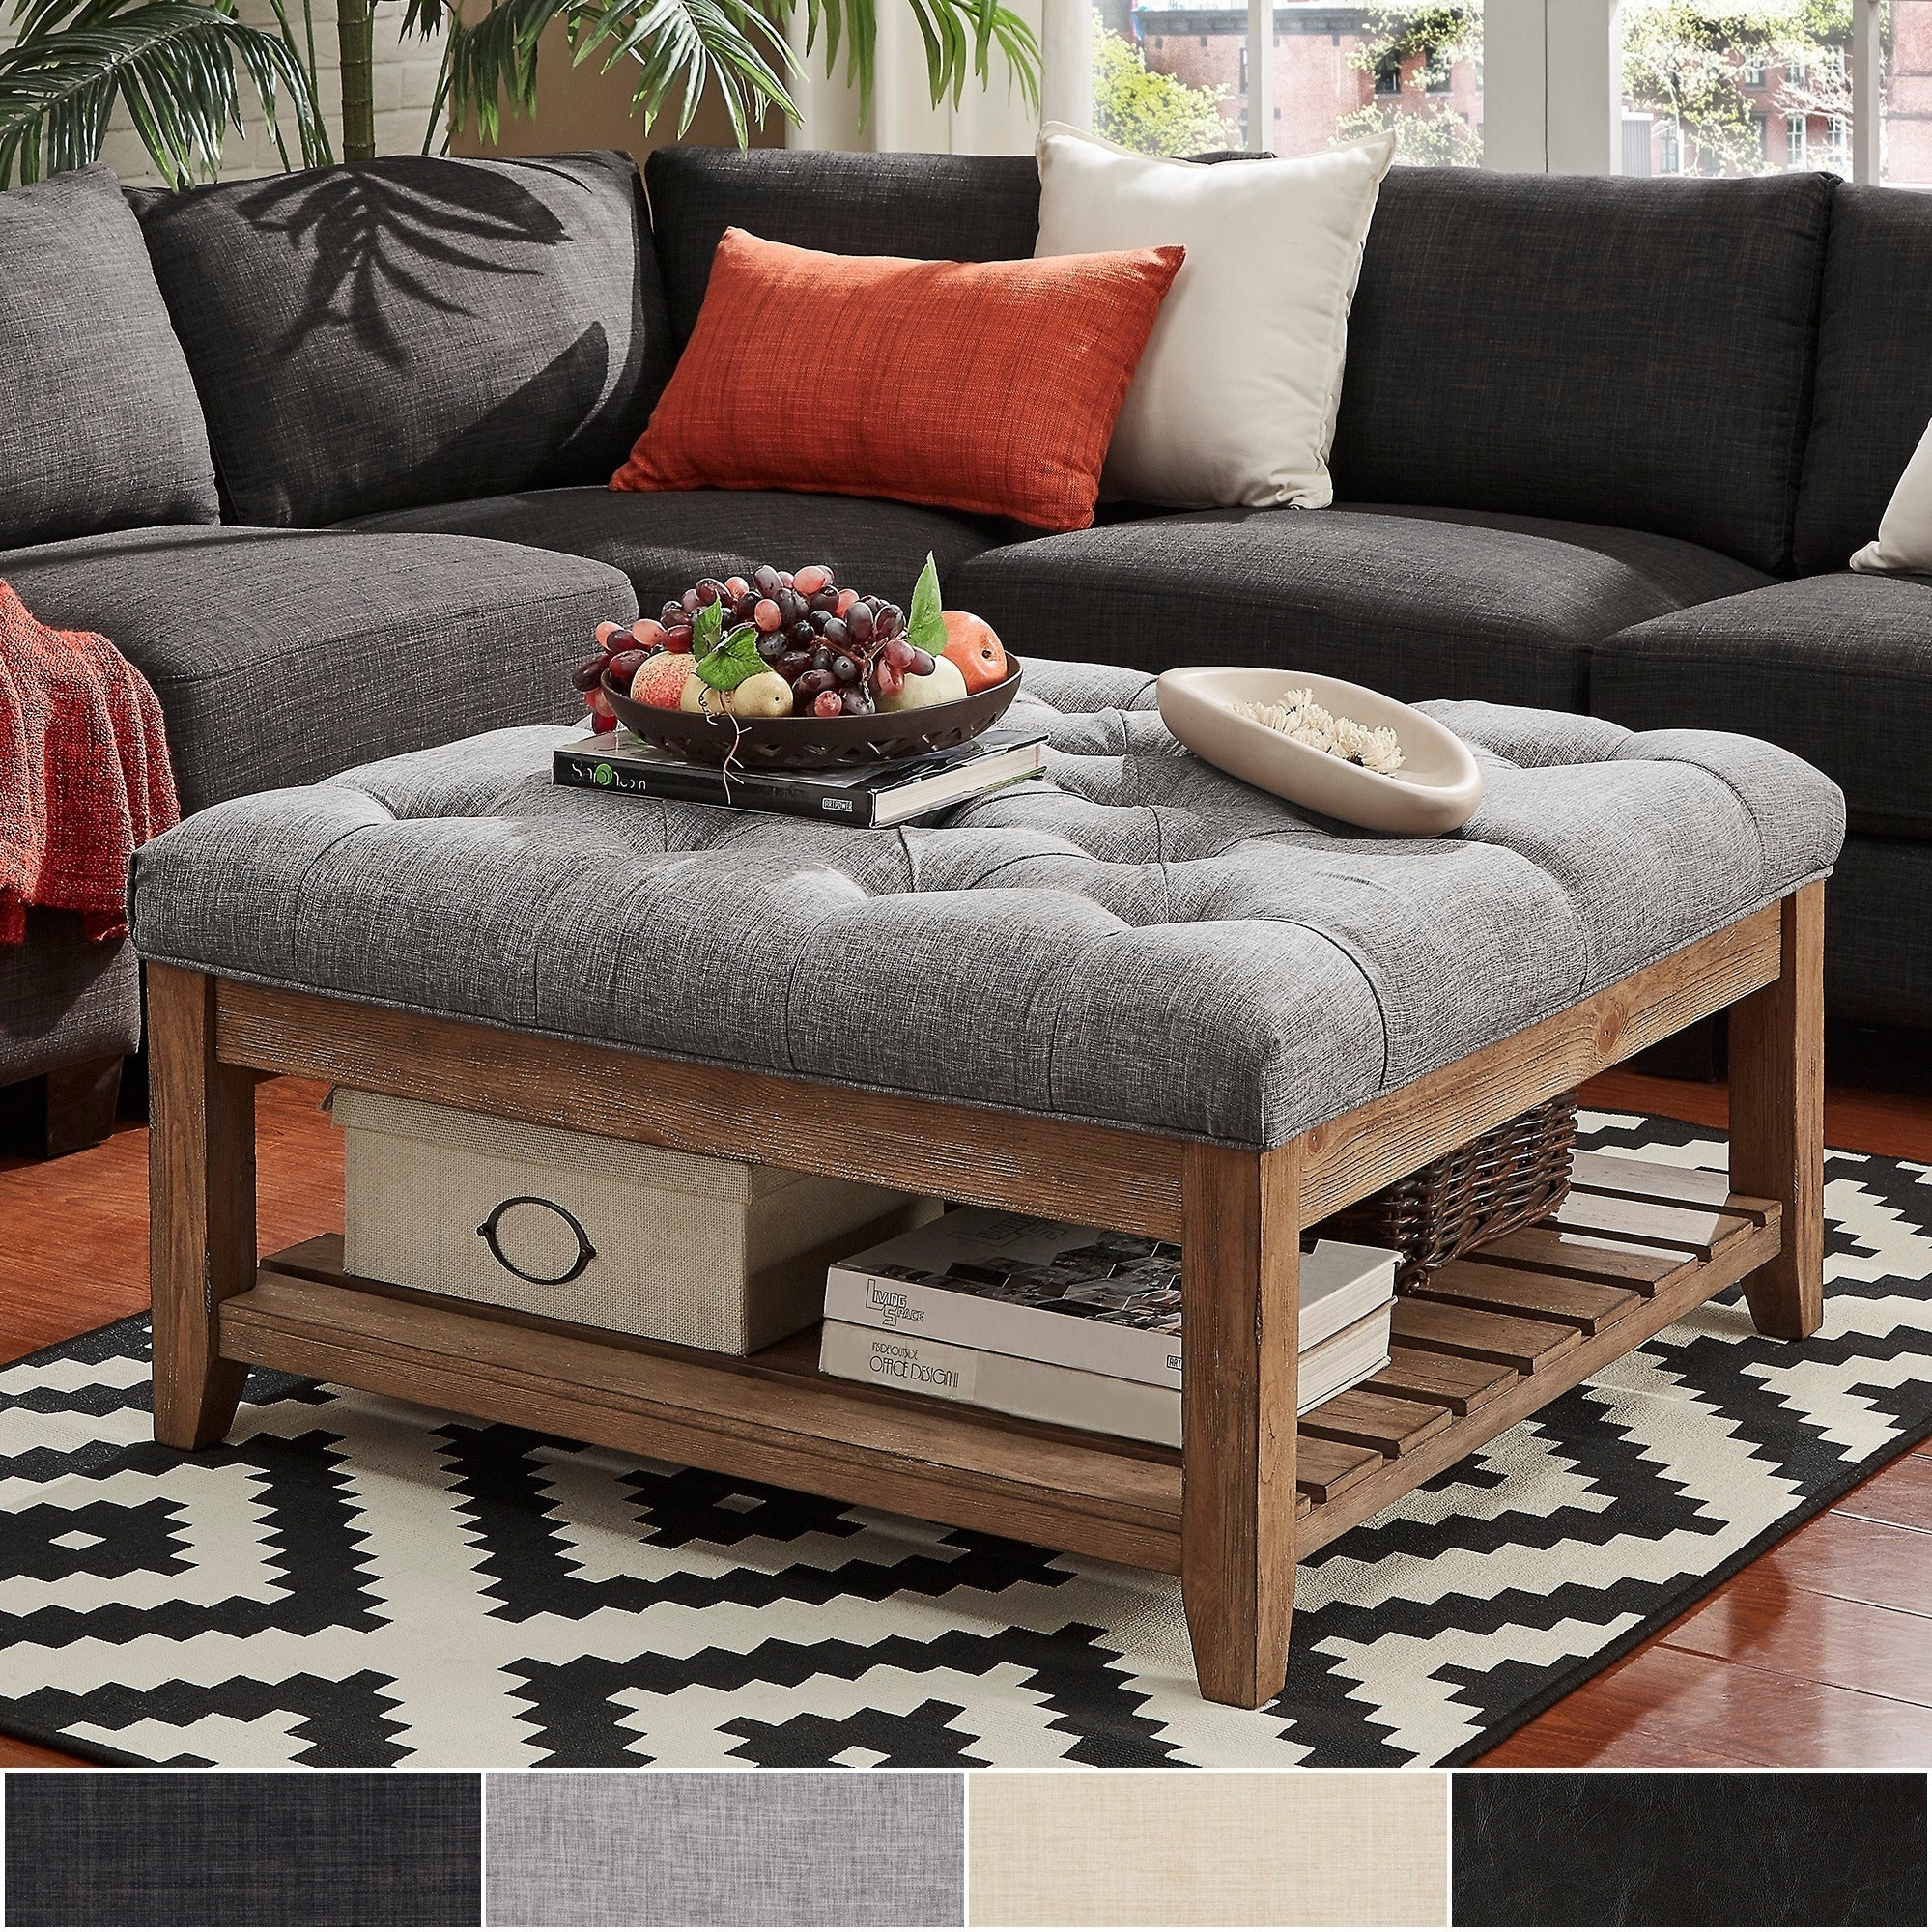 Lennon Pine Planked Storage Ottoman Coffee Table by iNSPIRE Q